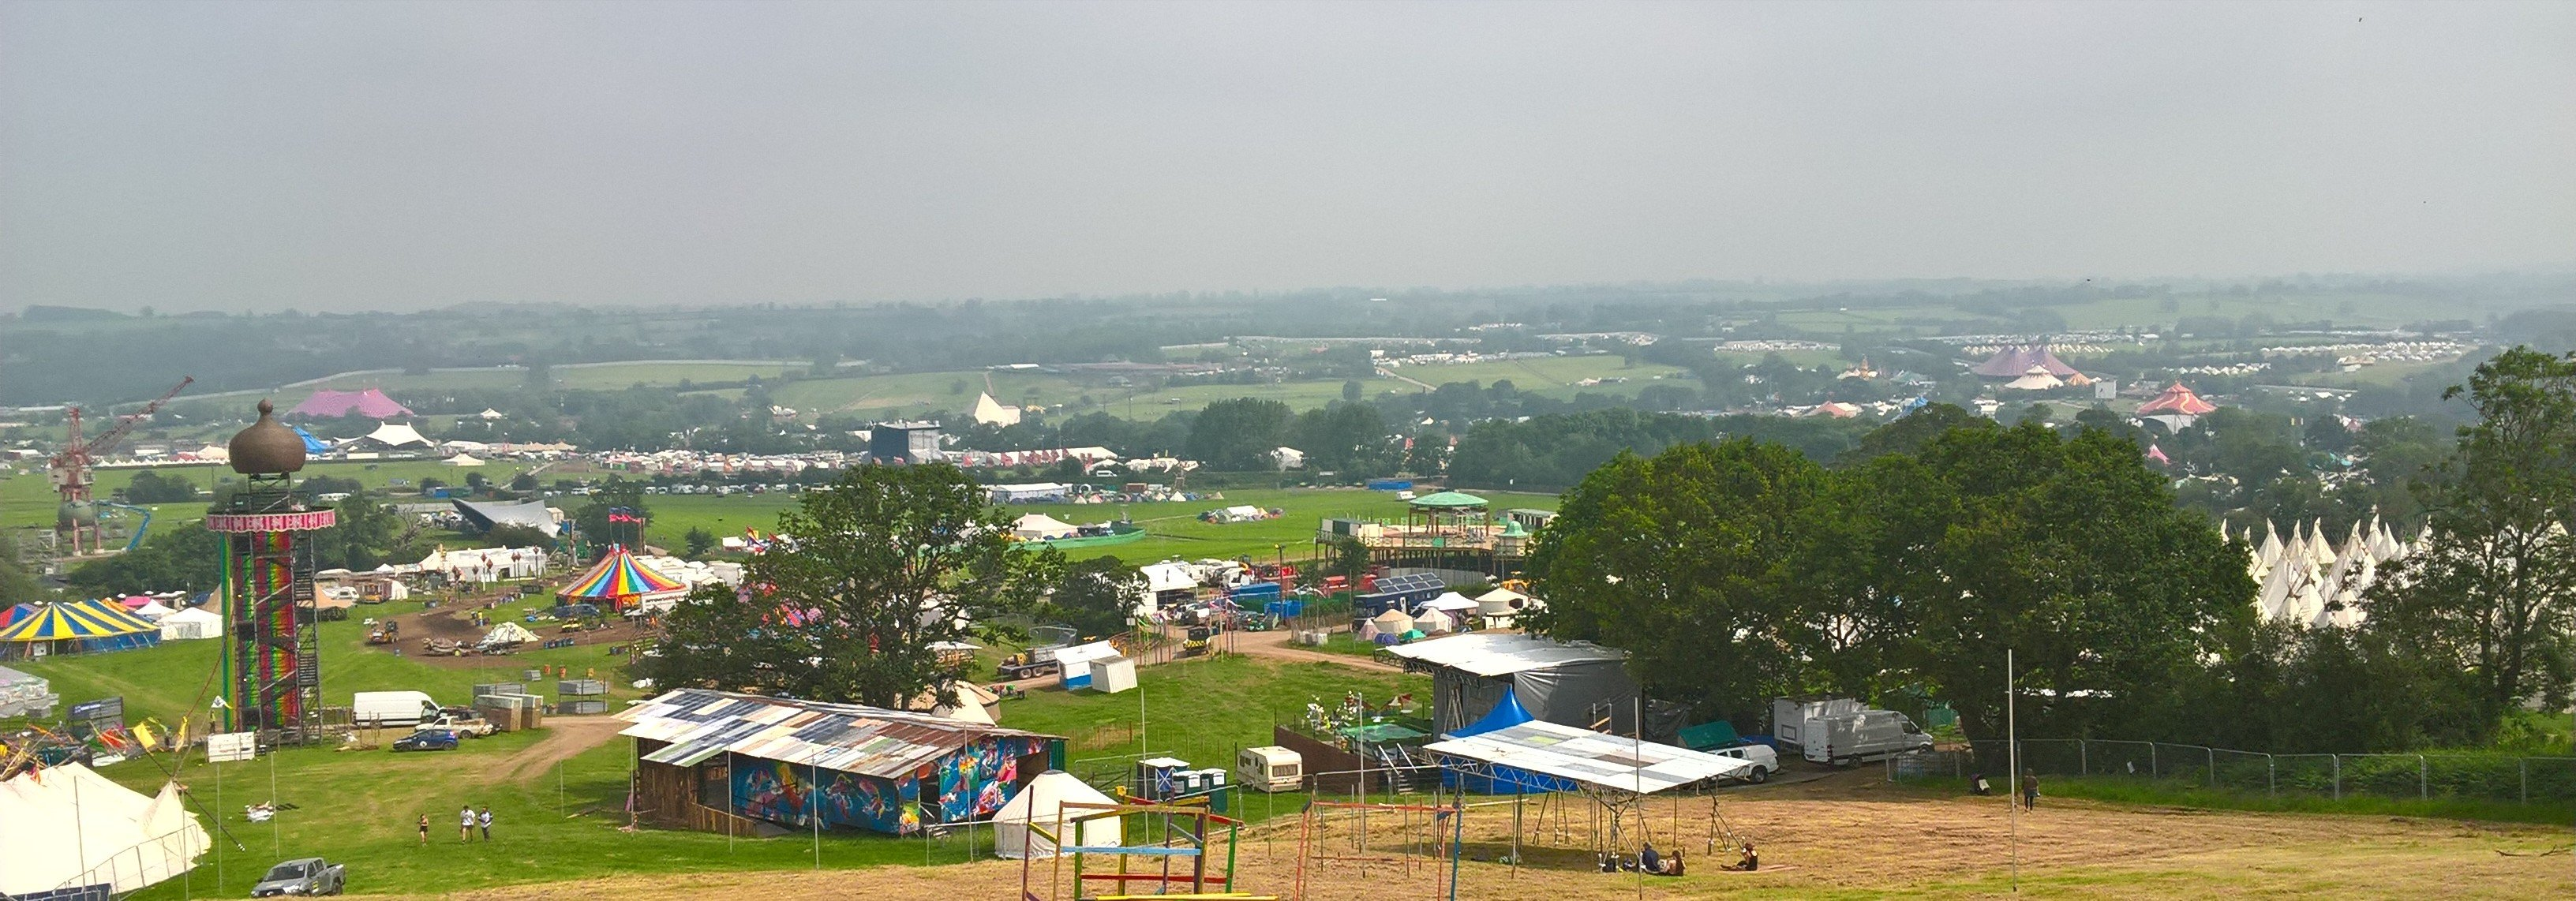 panoramic view of glastonbury festival site